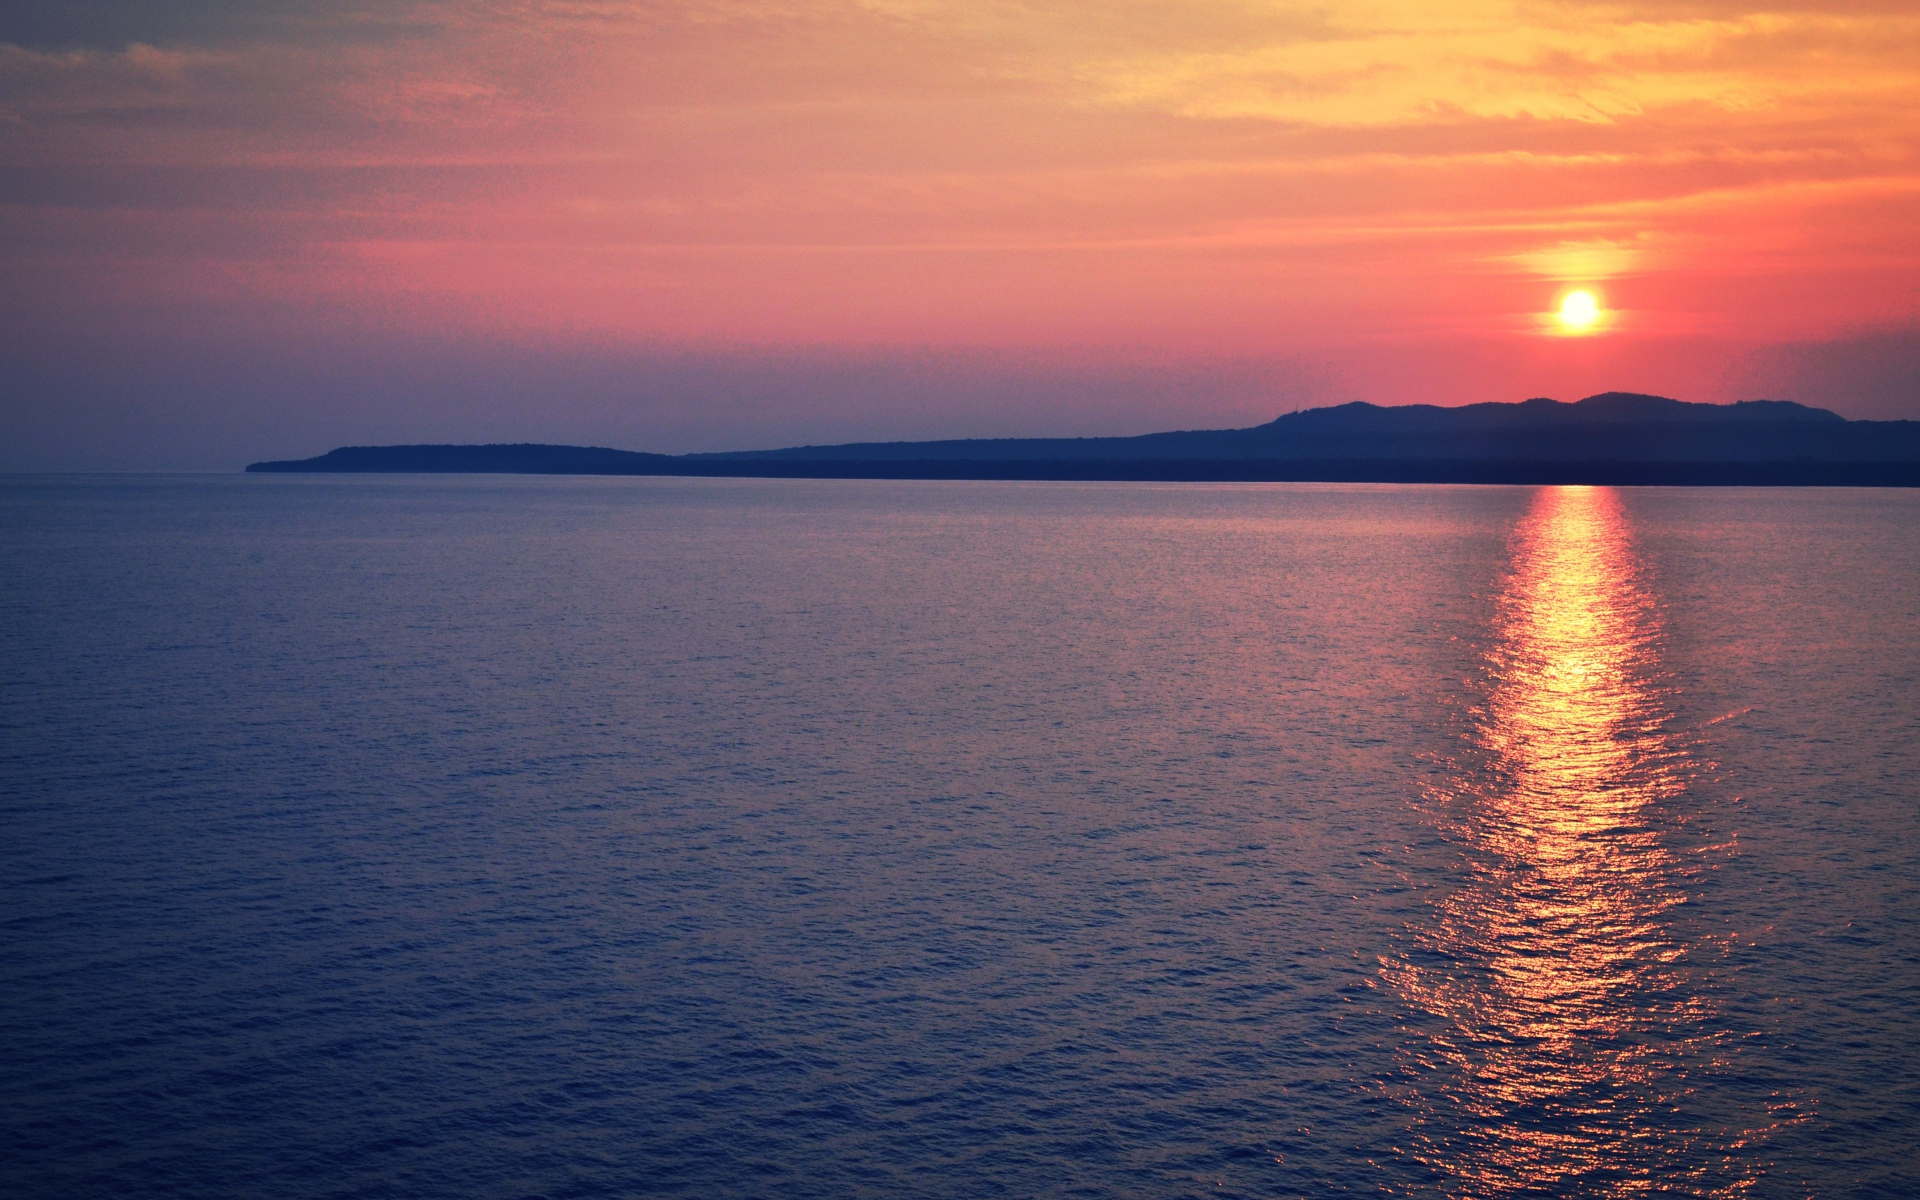 30+ HD Sunset Wallpapers, Backgrounds, Images | Design ...